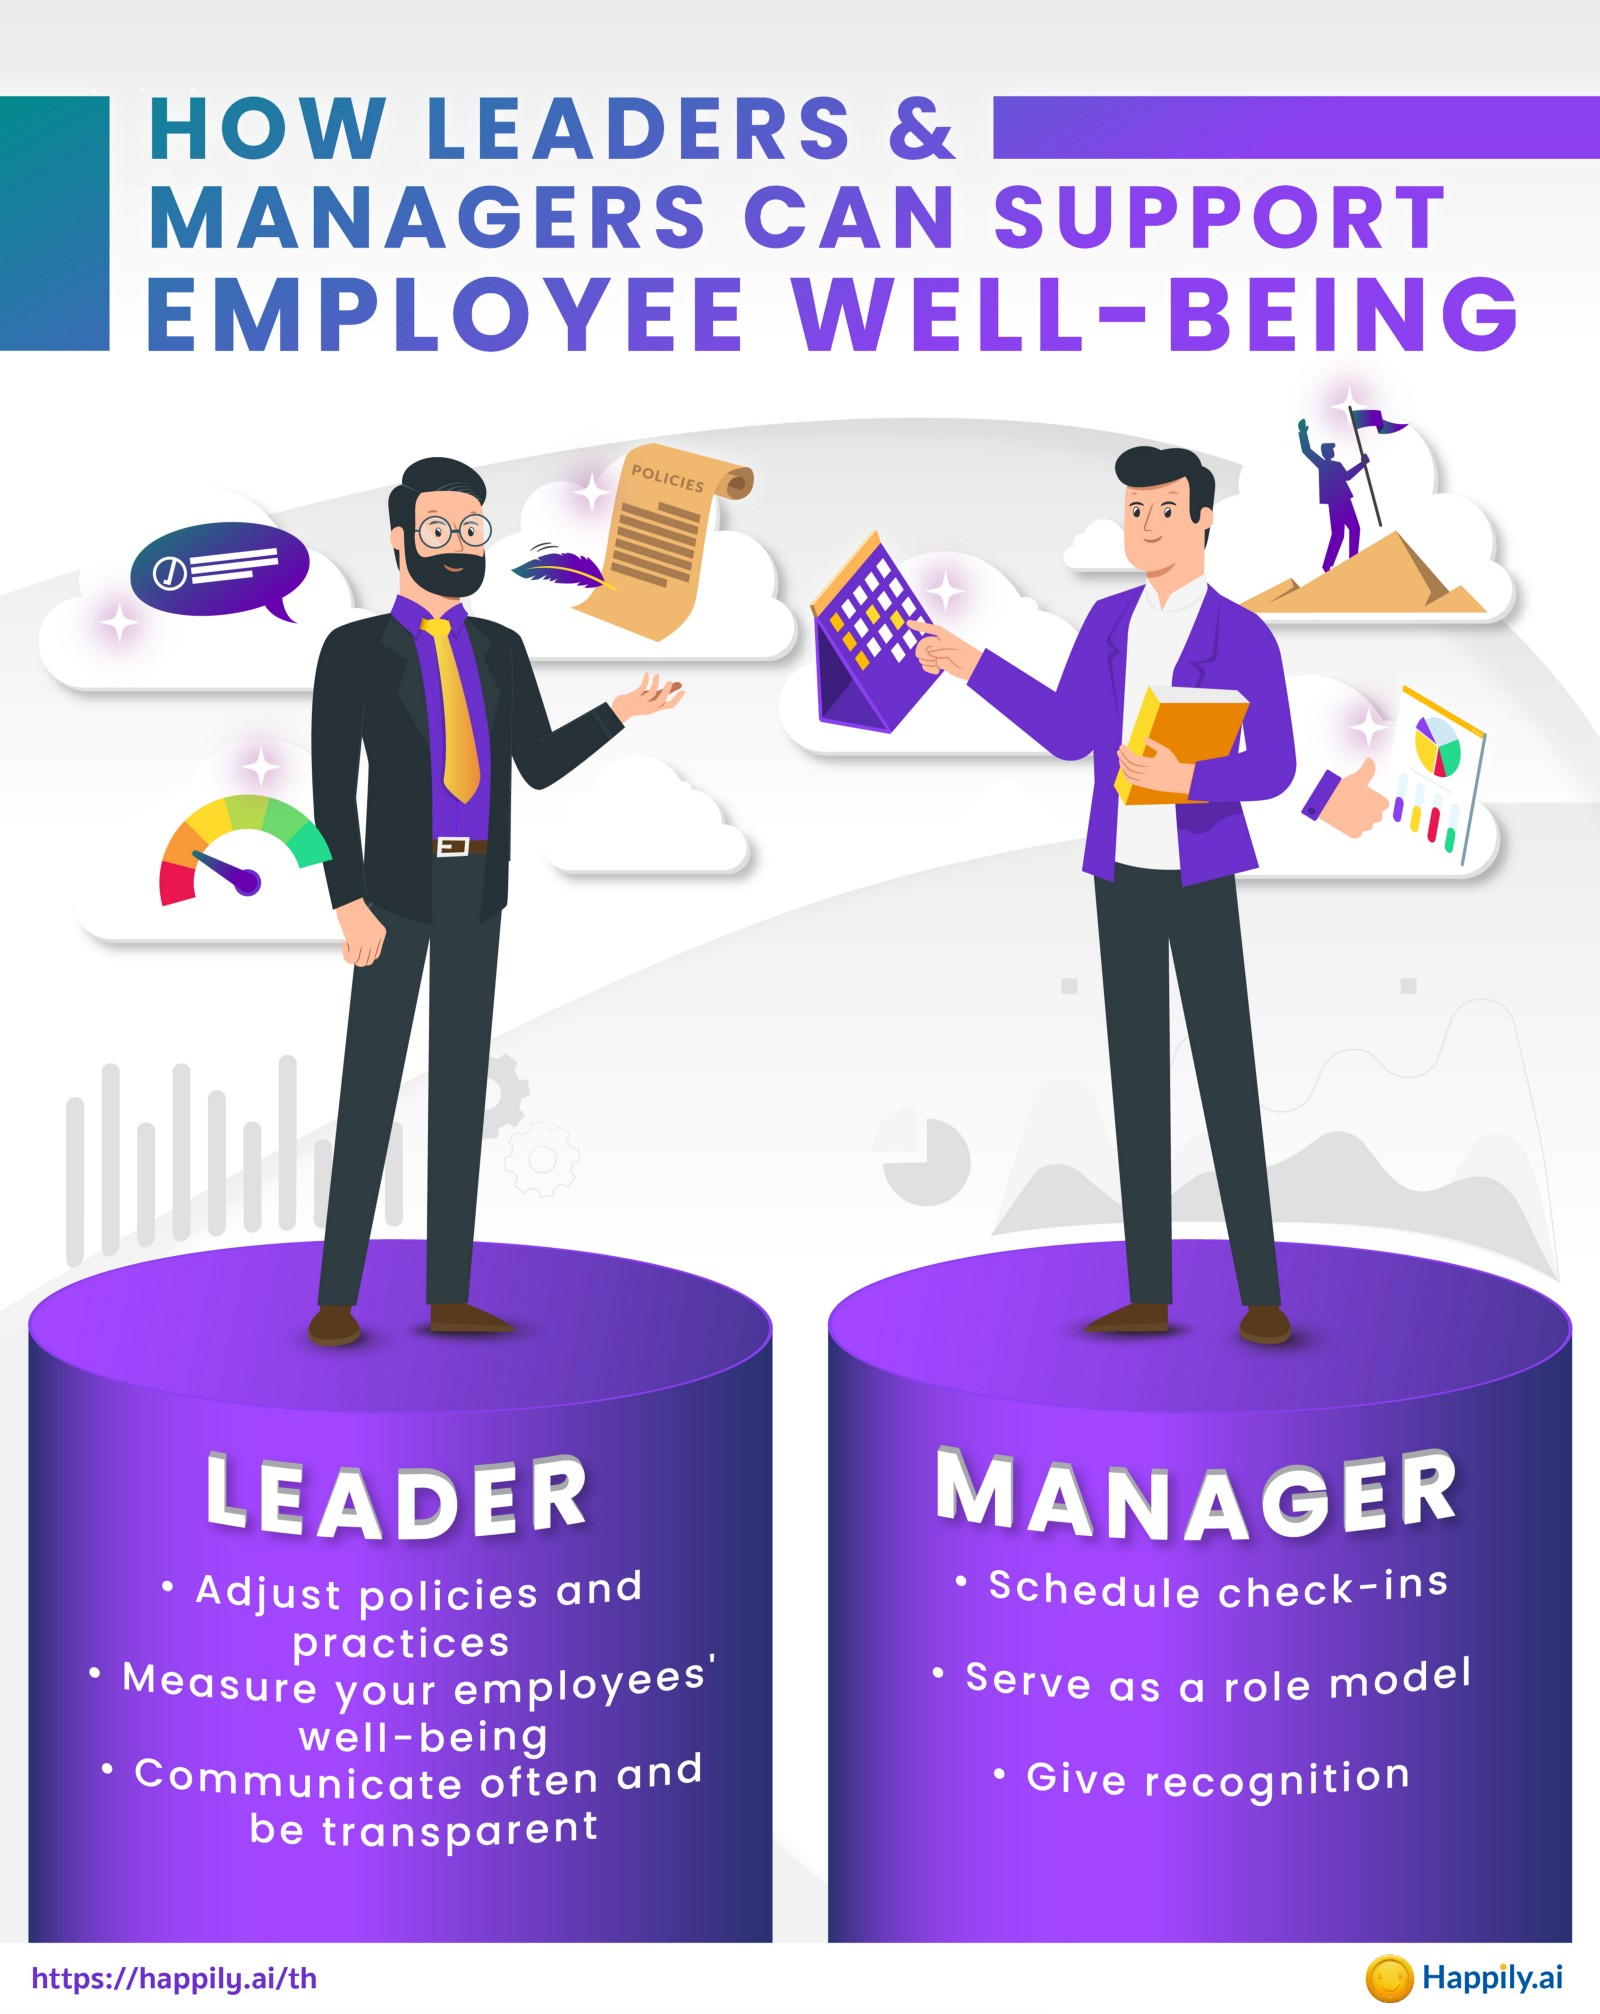 How leaders and managers can support well-being